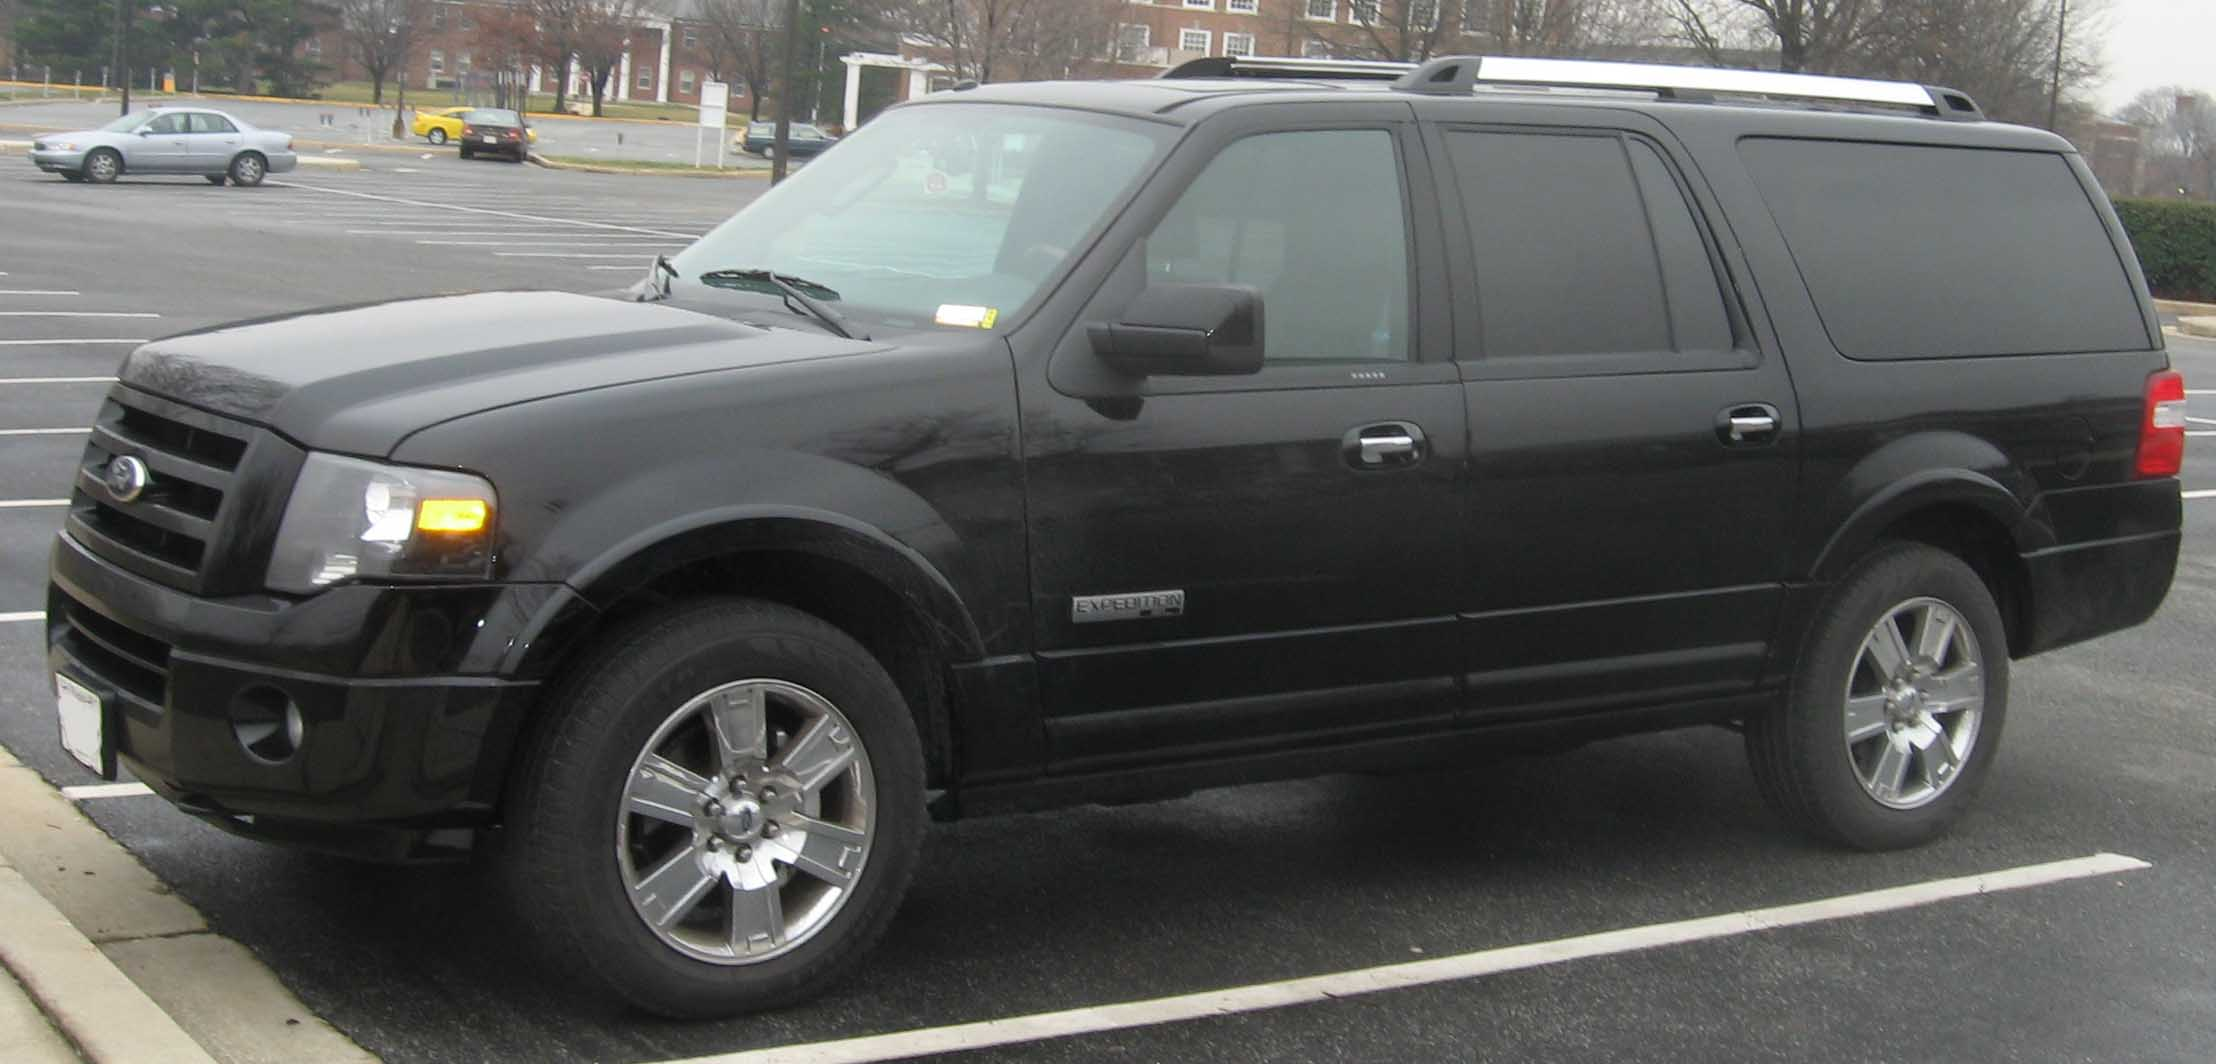 File:Ford Expedition Limited EL.jpg - Wikimedia Commons